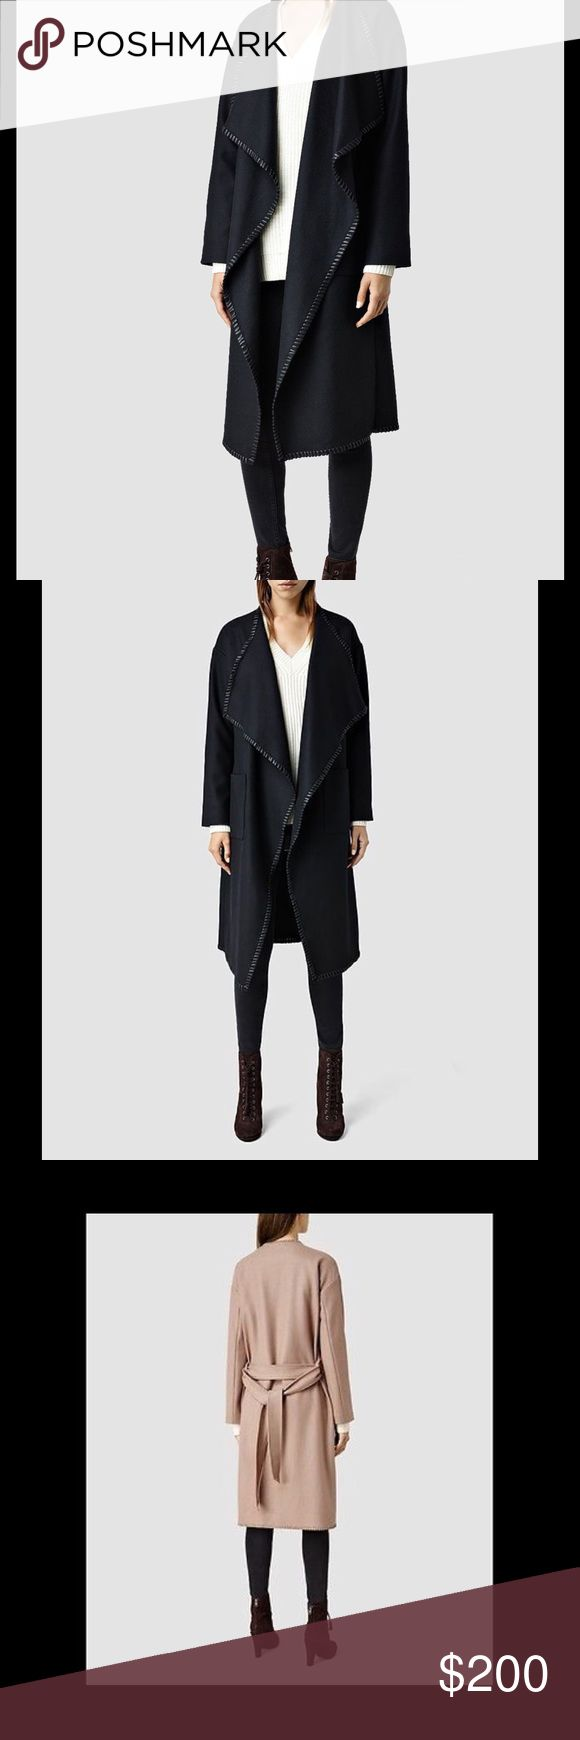 ALL SAINTS PAXX WOOL WRAP BELTED INK DRAPED COAT BRAND NEW WITH TAGS Color : Inc (black) Size: X-Small  From the exclusively sourced cloths, to the effortless silhouettes, ALLSAINTS coats are true investment pieces.   Crafted from an Italian wool blend with a unique waterfall front and whipstitch detailing along the hemlines, and featuring a waistband belt.  Versatility is key, leave open or wrap around and tie with the belt.  Pair with dark tones for an unrivalled outfit. 80% wool, 20%…